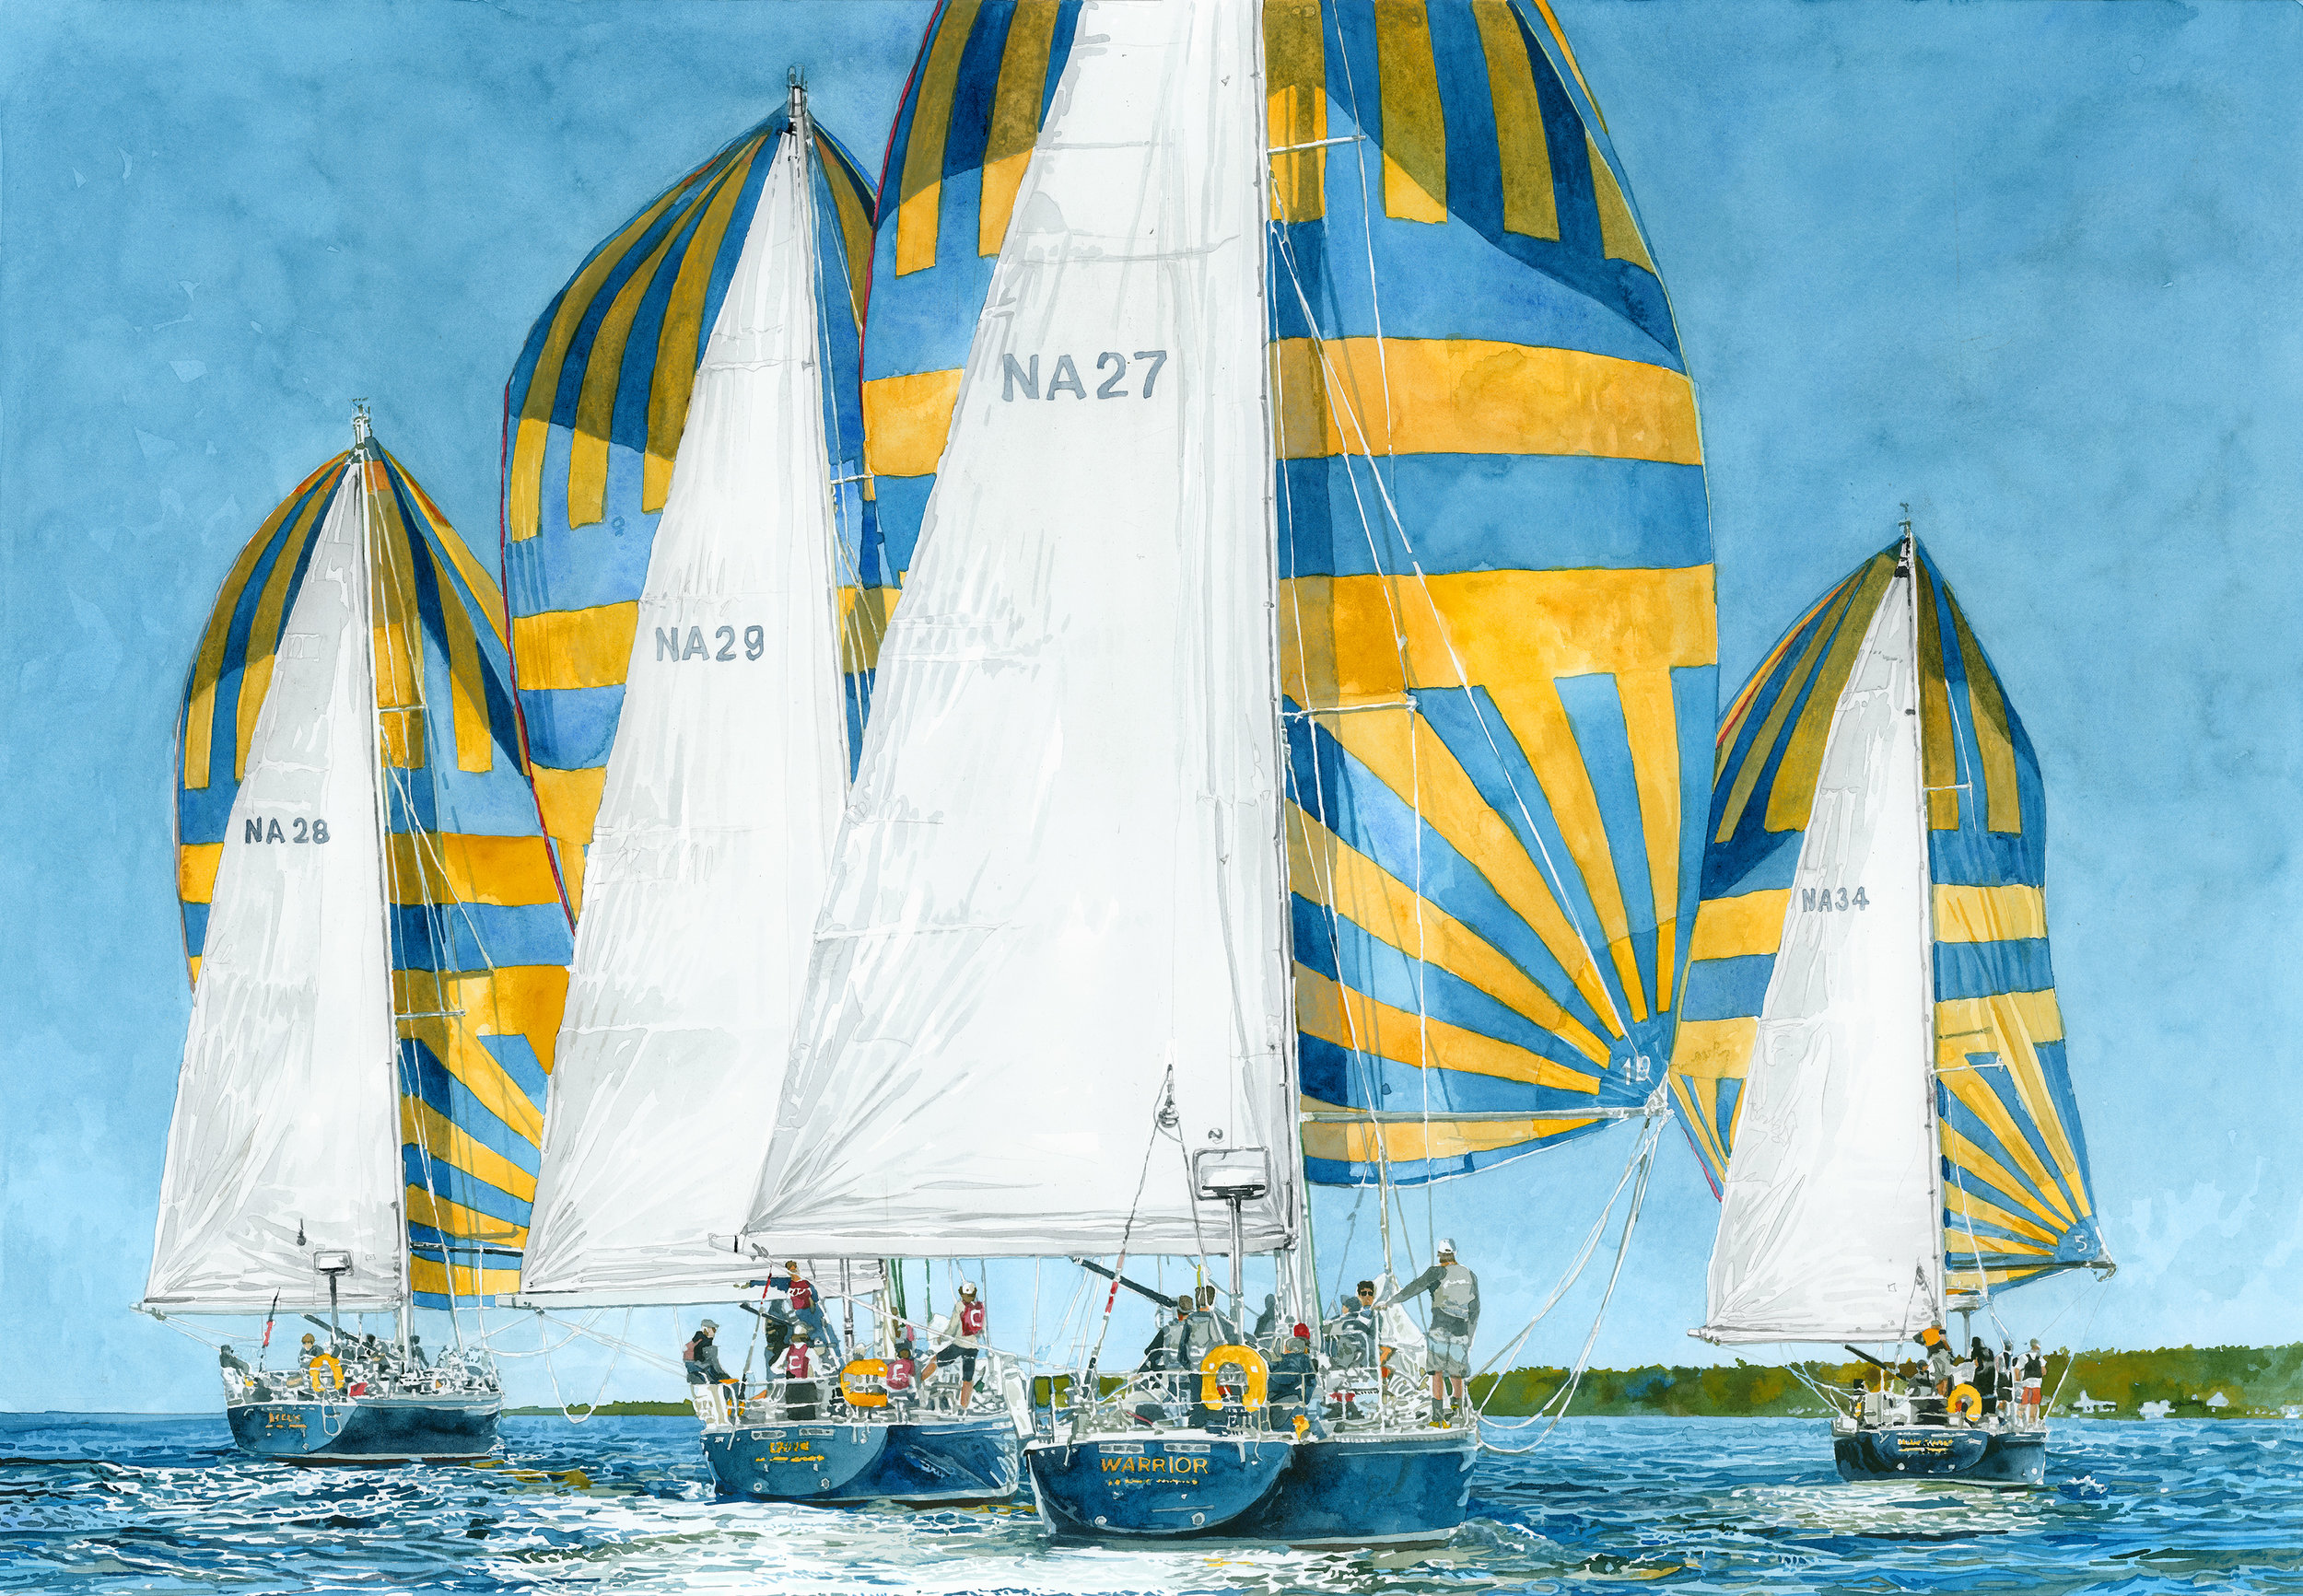 """Bringing the Wind"" / Navy 44s / Kennedy Cup, 22"" x 17"" Giclee Print 